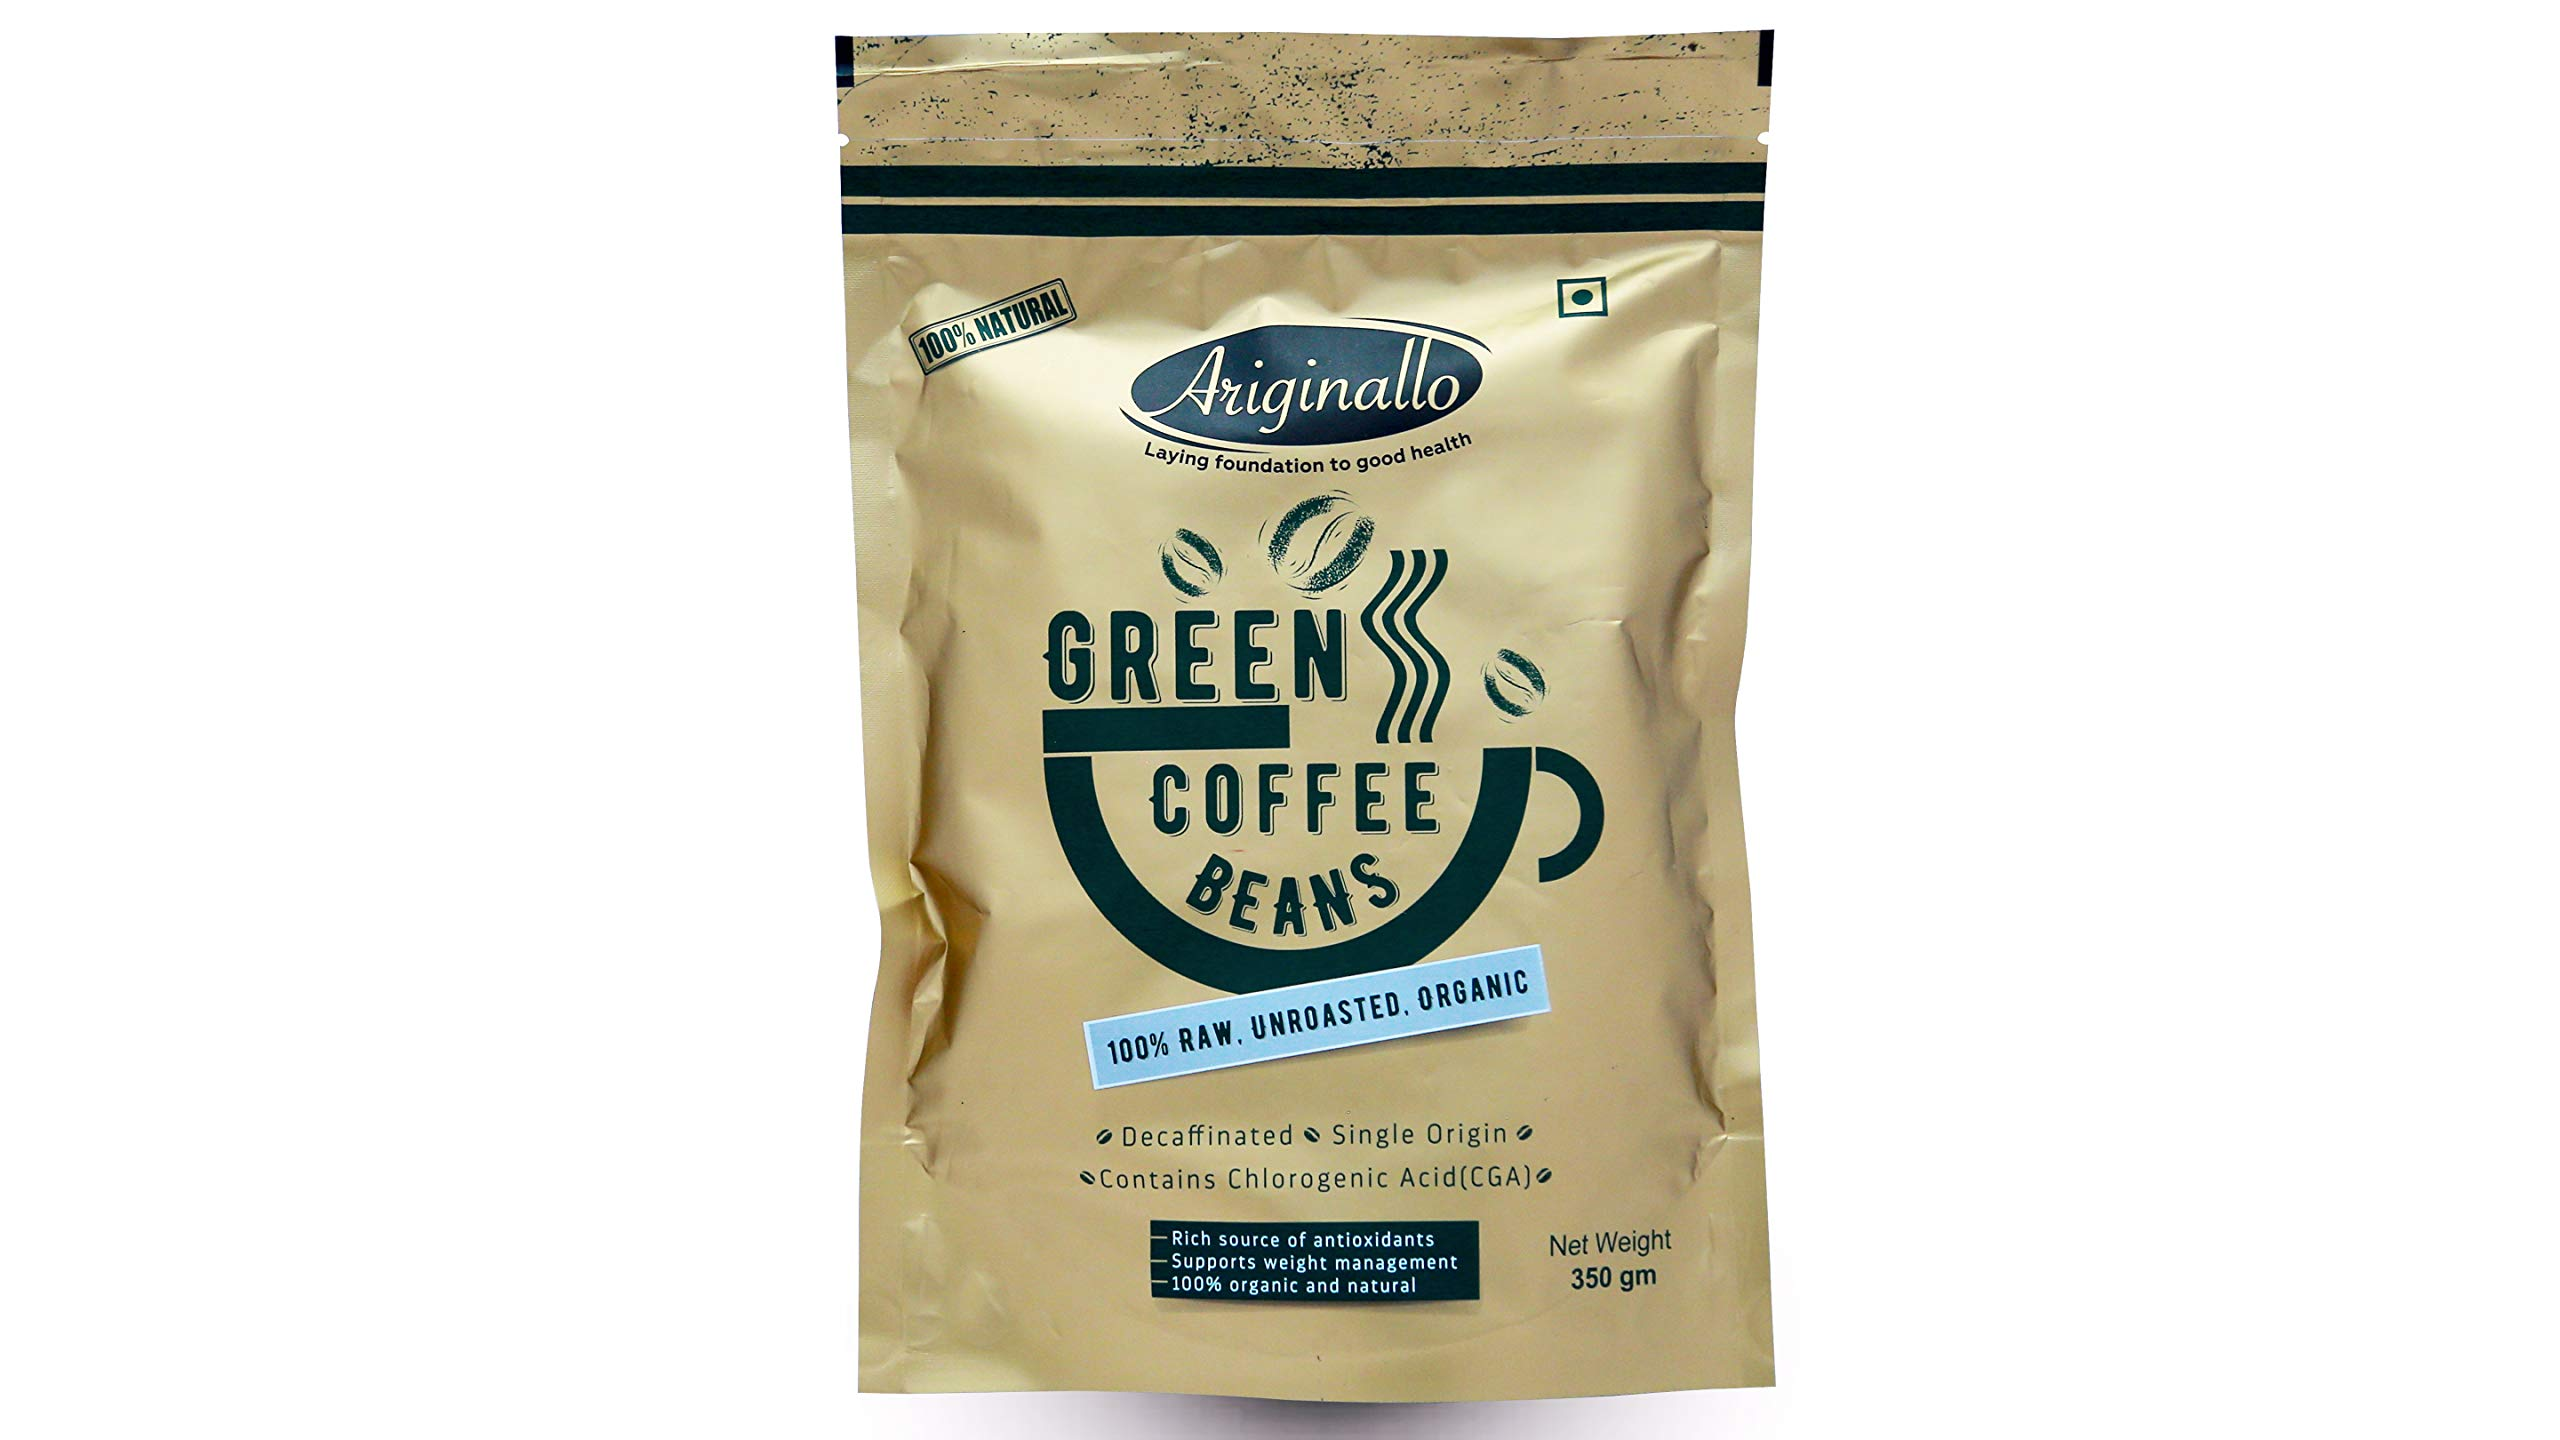 Ariginallo Green Coffee Beans For Weight Loss 350 G Buy Online